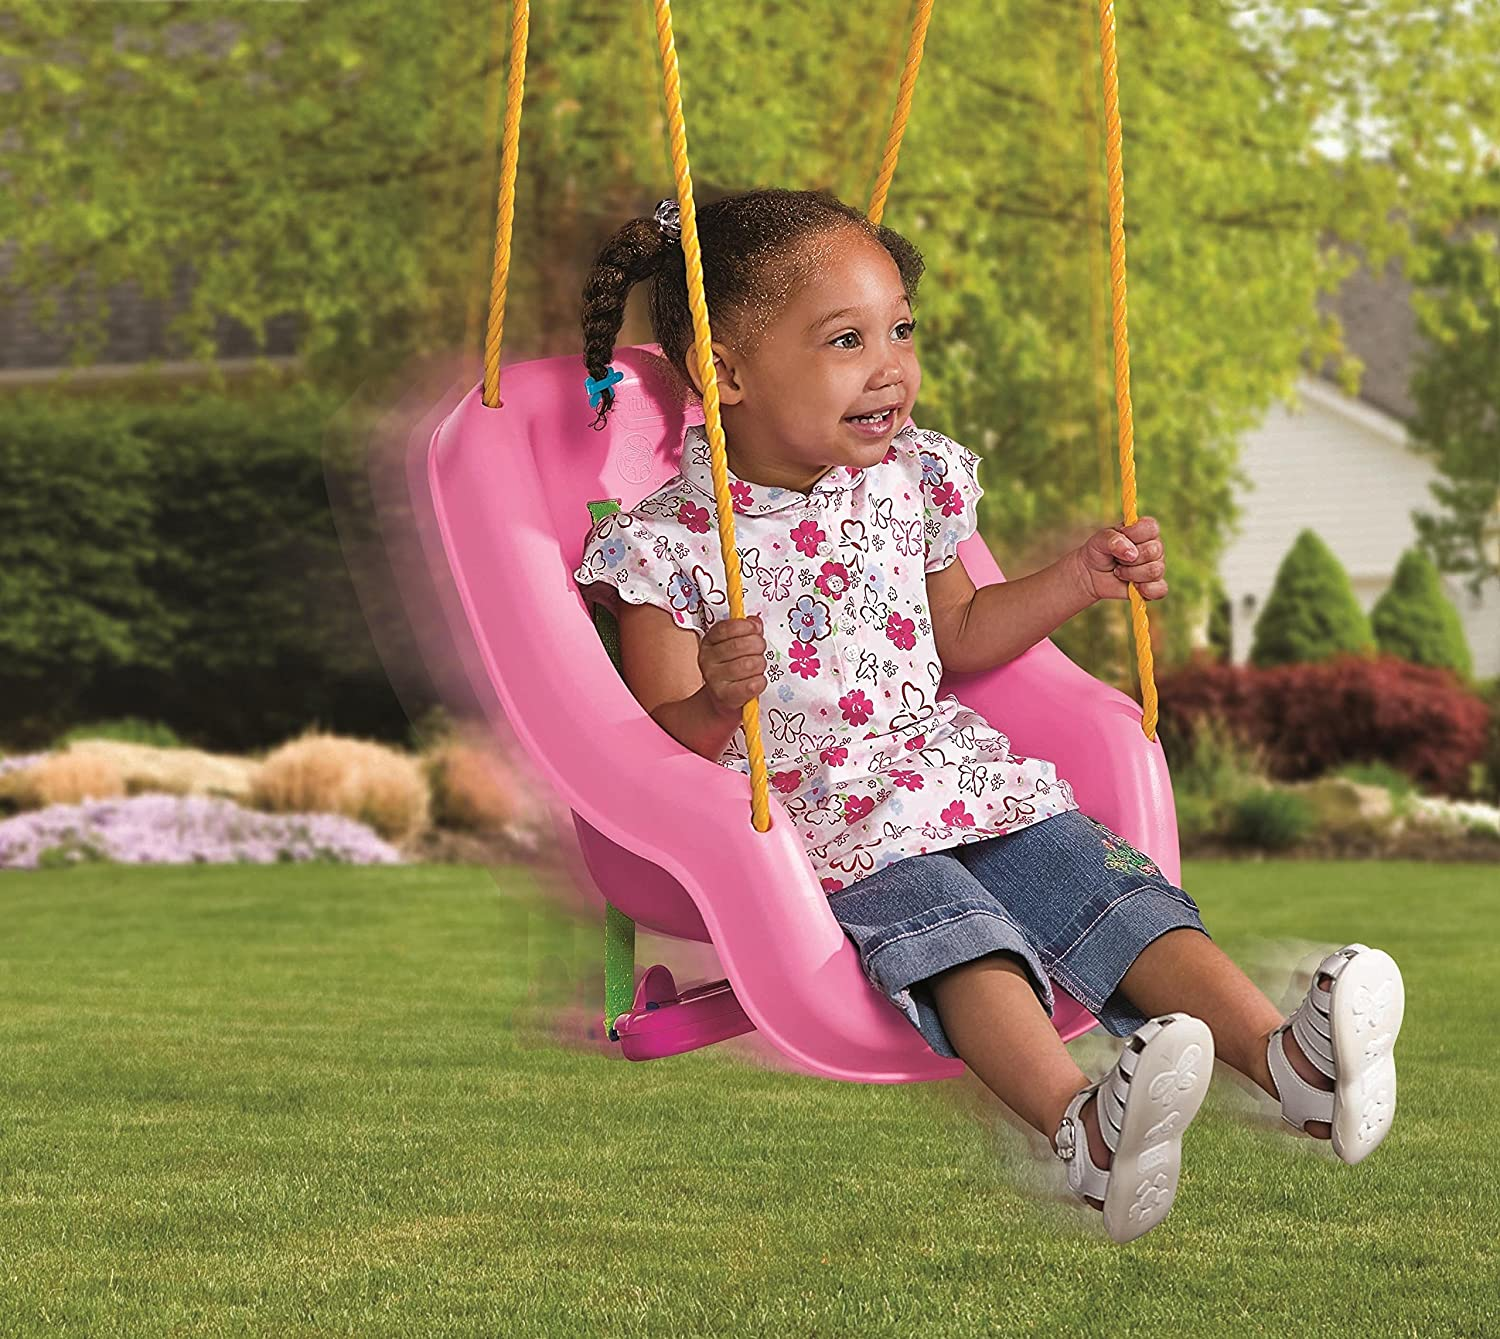 Little Tikes 2-in-1 Snug 'n Secure Swing